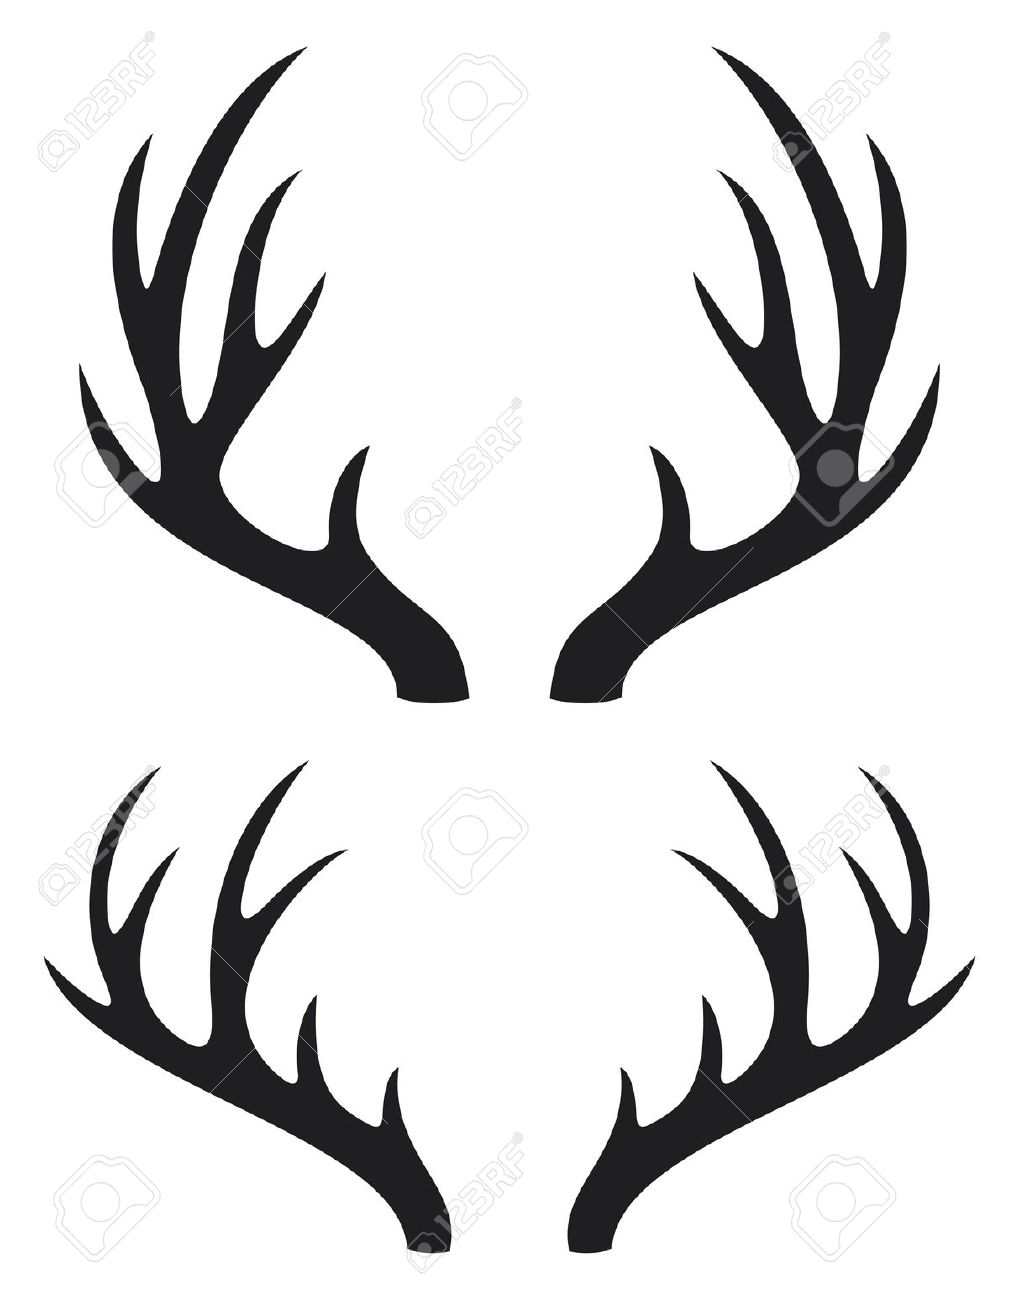 Whitetail Deer Antlers Clipart besides Antler 20clipart 20mule 20deer also Deer Outline Clipart Black And White additionally Window Black And White besides Skull Drawing. on black deer antlers